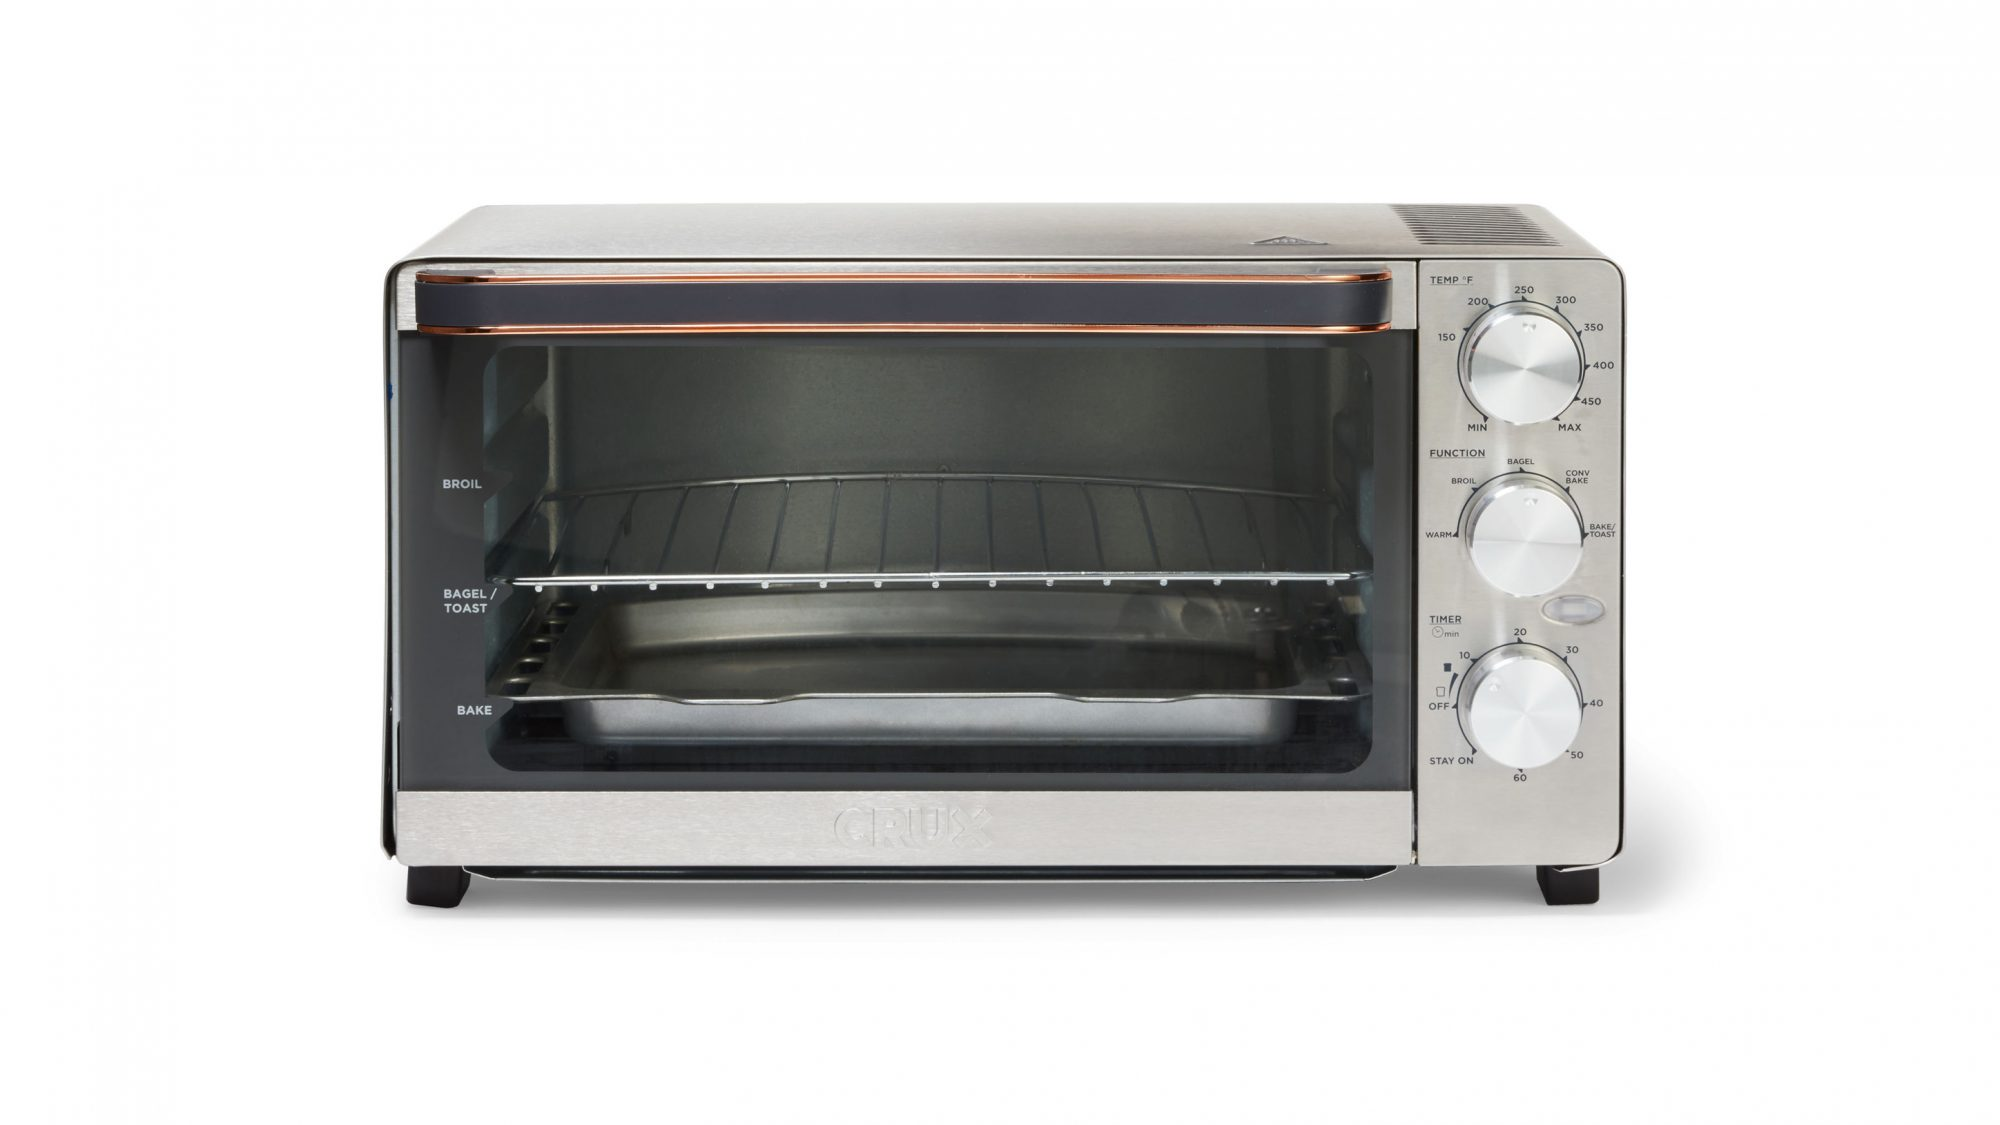 crux 6 slice convection toaster oven